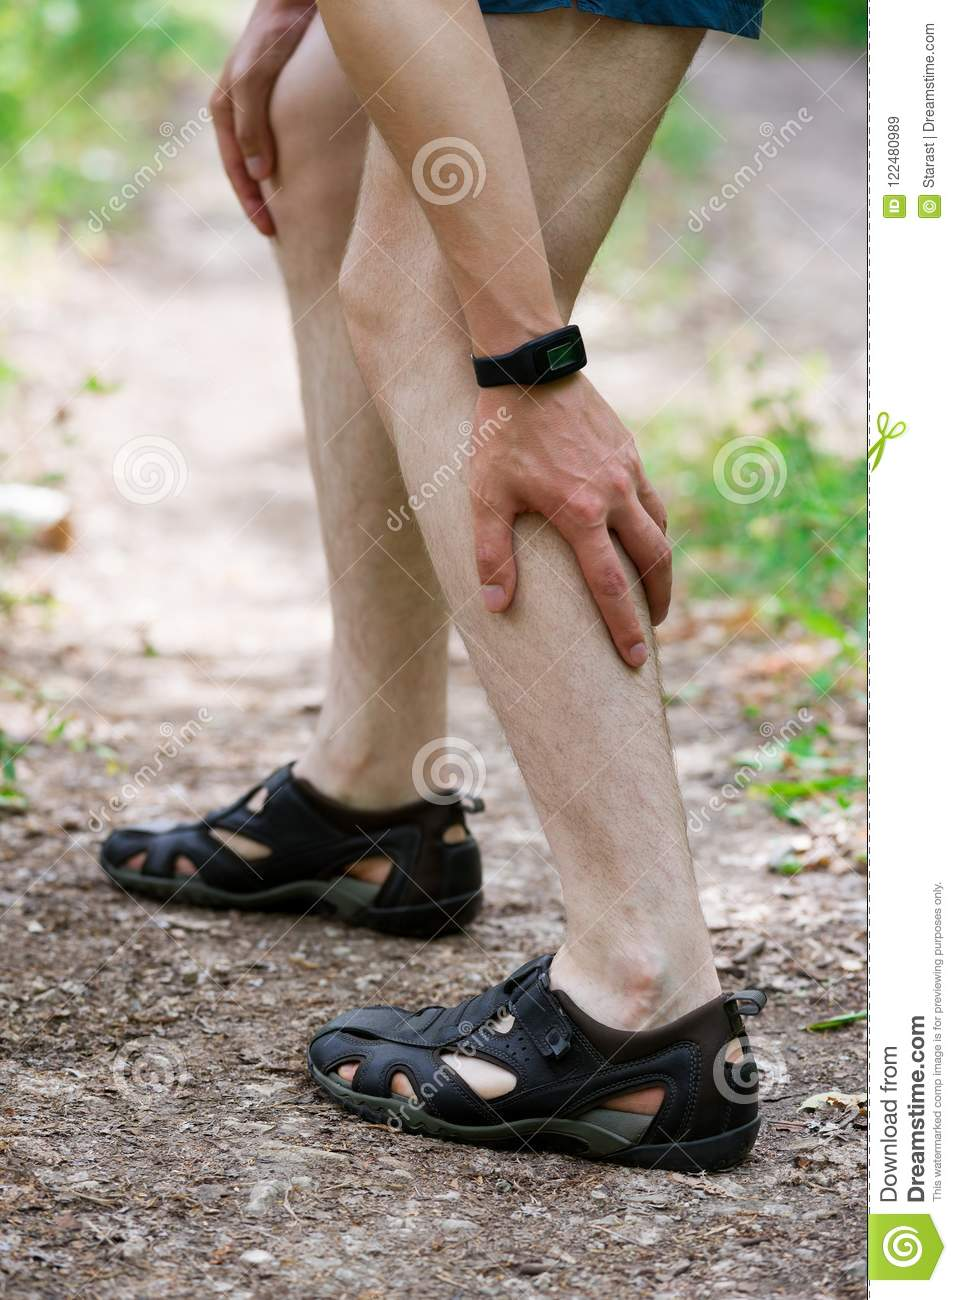 pain in calf muscle sprains on the leg massage of male foot